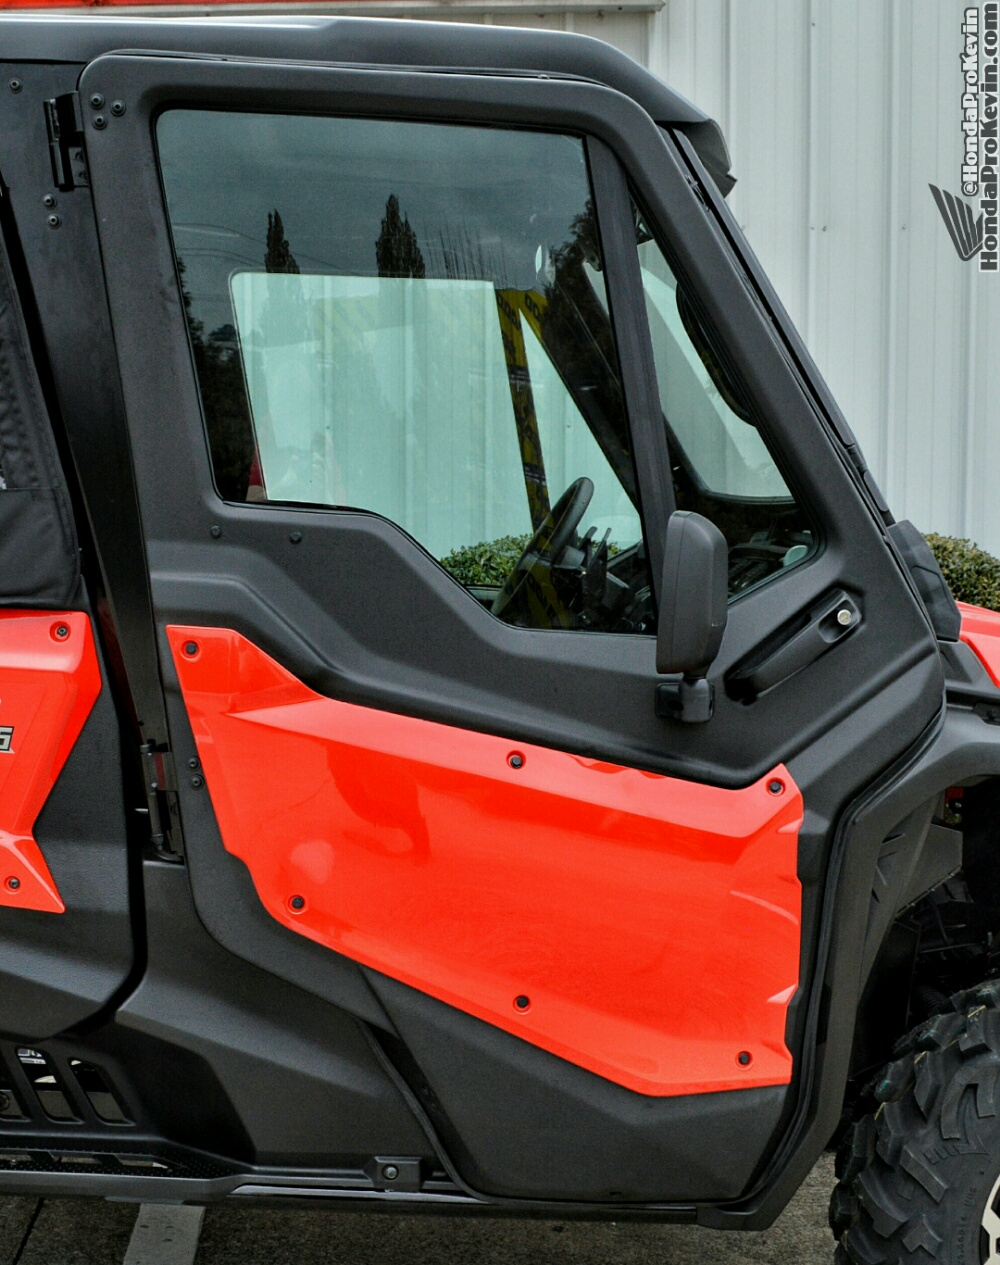 2016 Honda Pioneer 1000-5 ($9000+ in Accessories) 29  Tires / All Weather Package + More! | Honda-Pro Kevin & 2016 Honda Pioneer 1000-5 ($9000+ in Accessories) 29